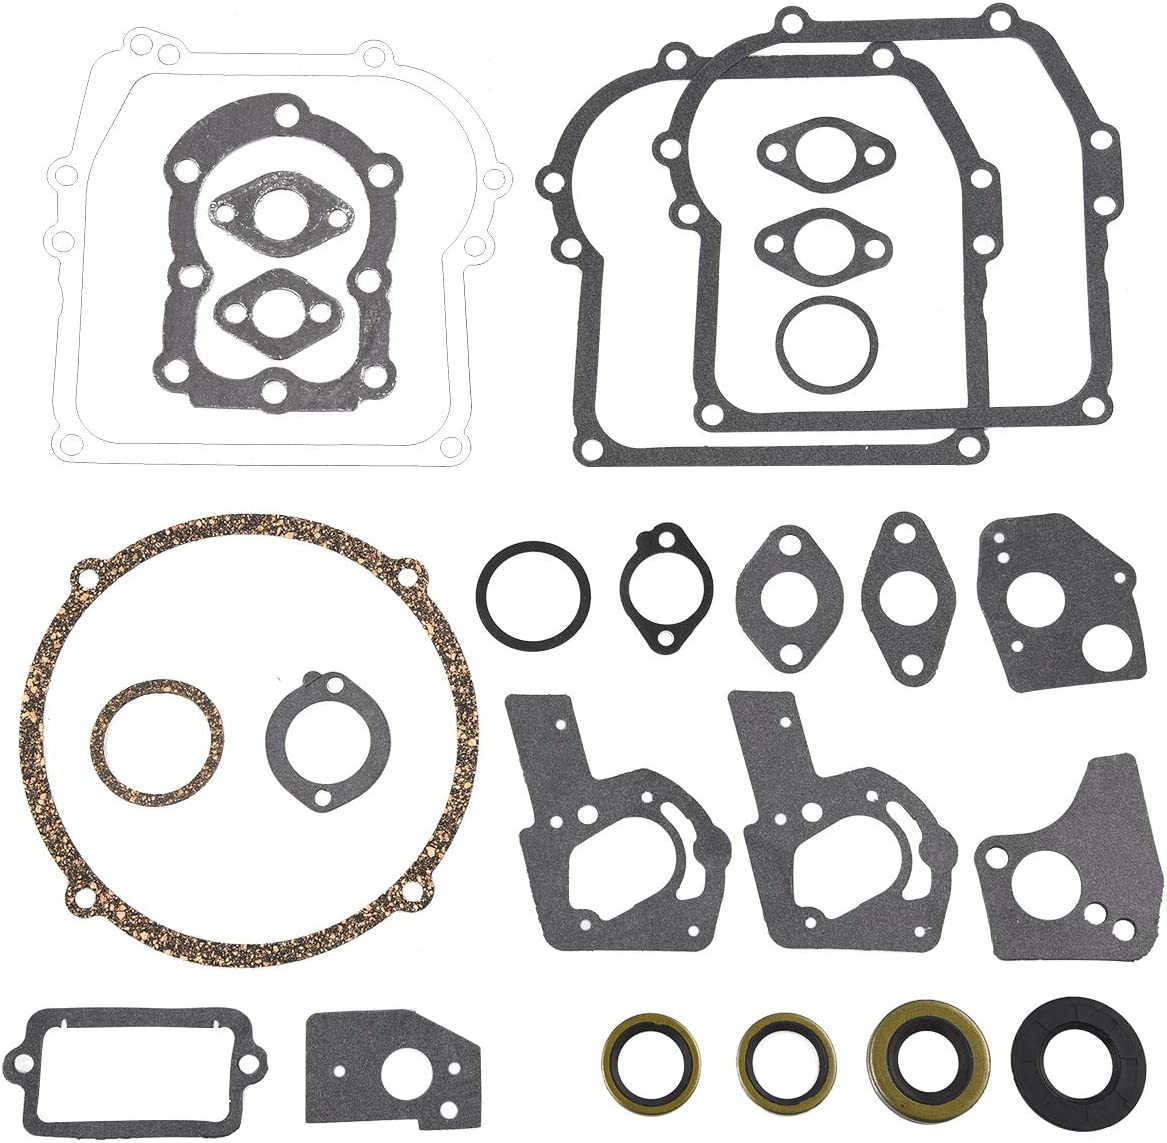 PRO CAKEN 495602 Engine Gasket Set Compatible with Replaces # 397144, 297275